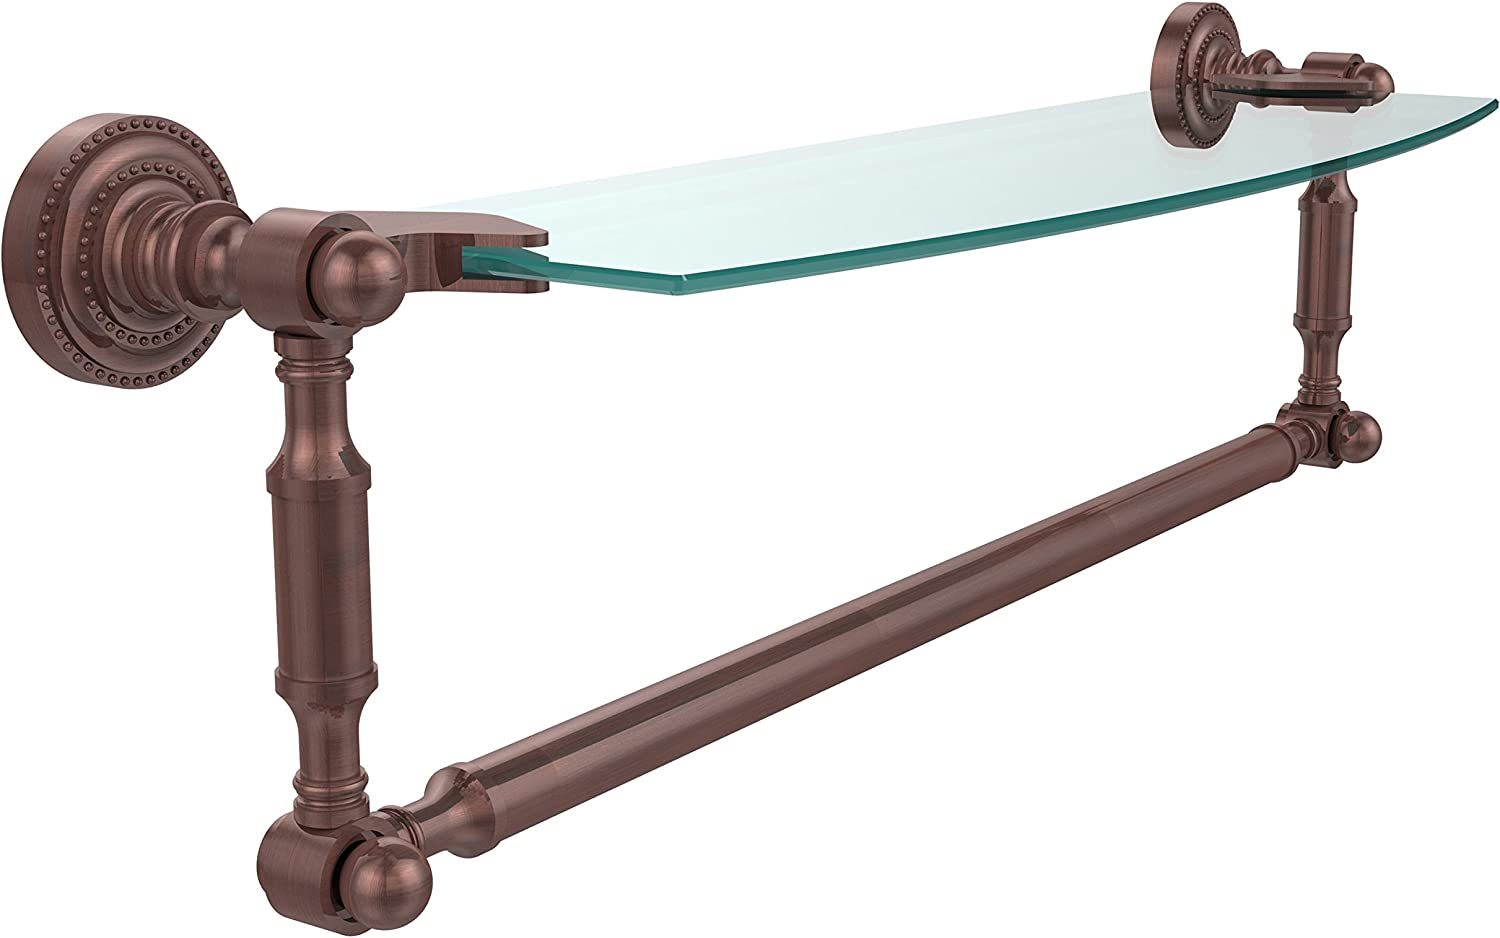 Allied Brass DT-33TB 18-CA Glass Shelf with Towel Bar, 18-Inch x 5-Inch, Antique Copper